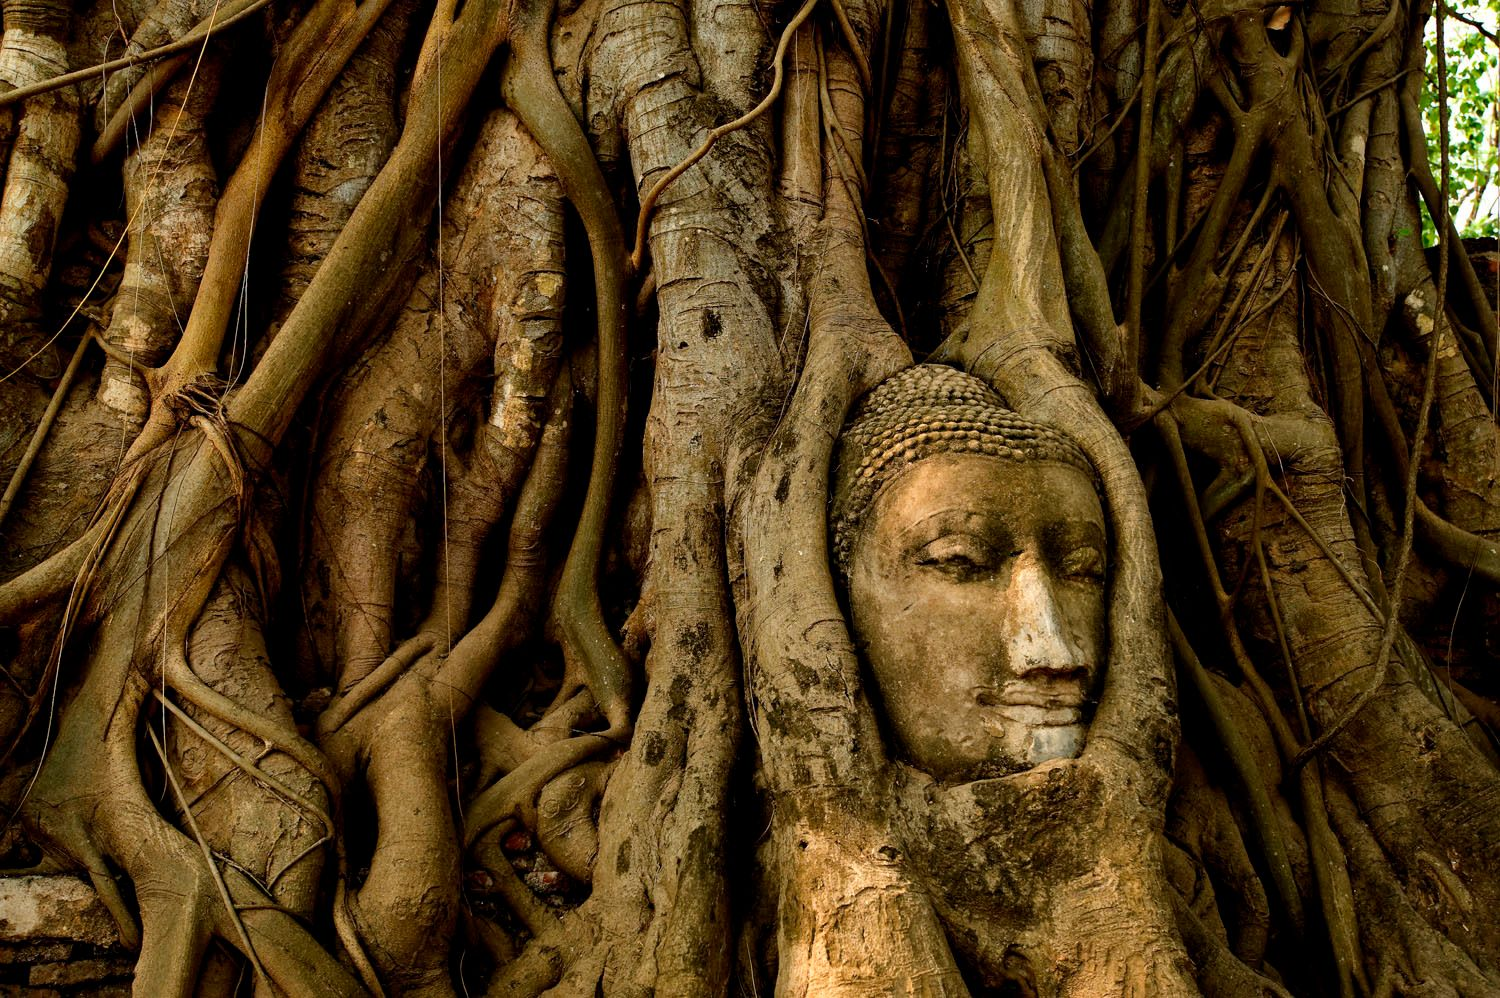 Buddha head amonst the roots of tree